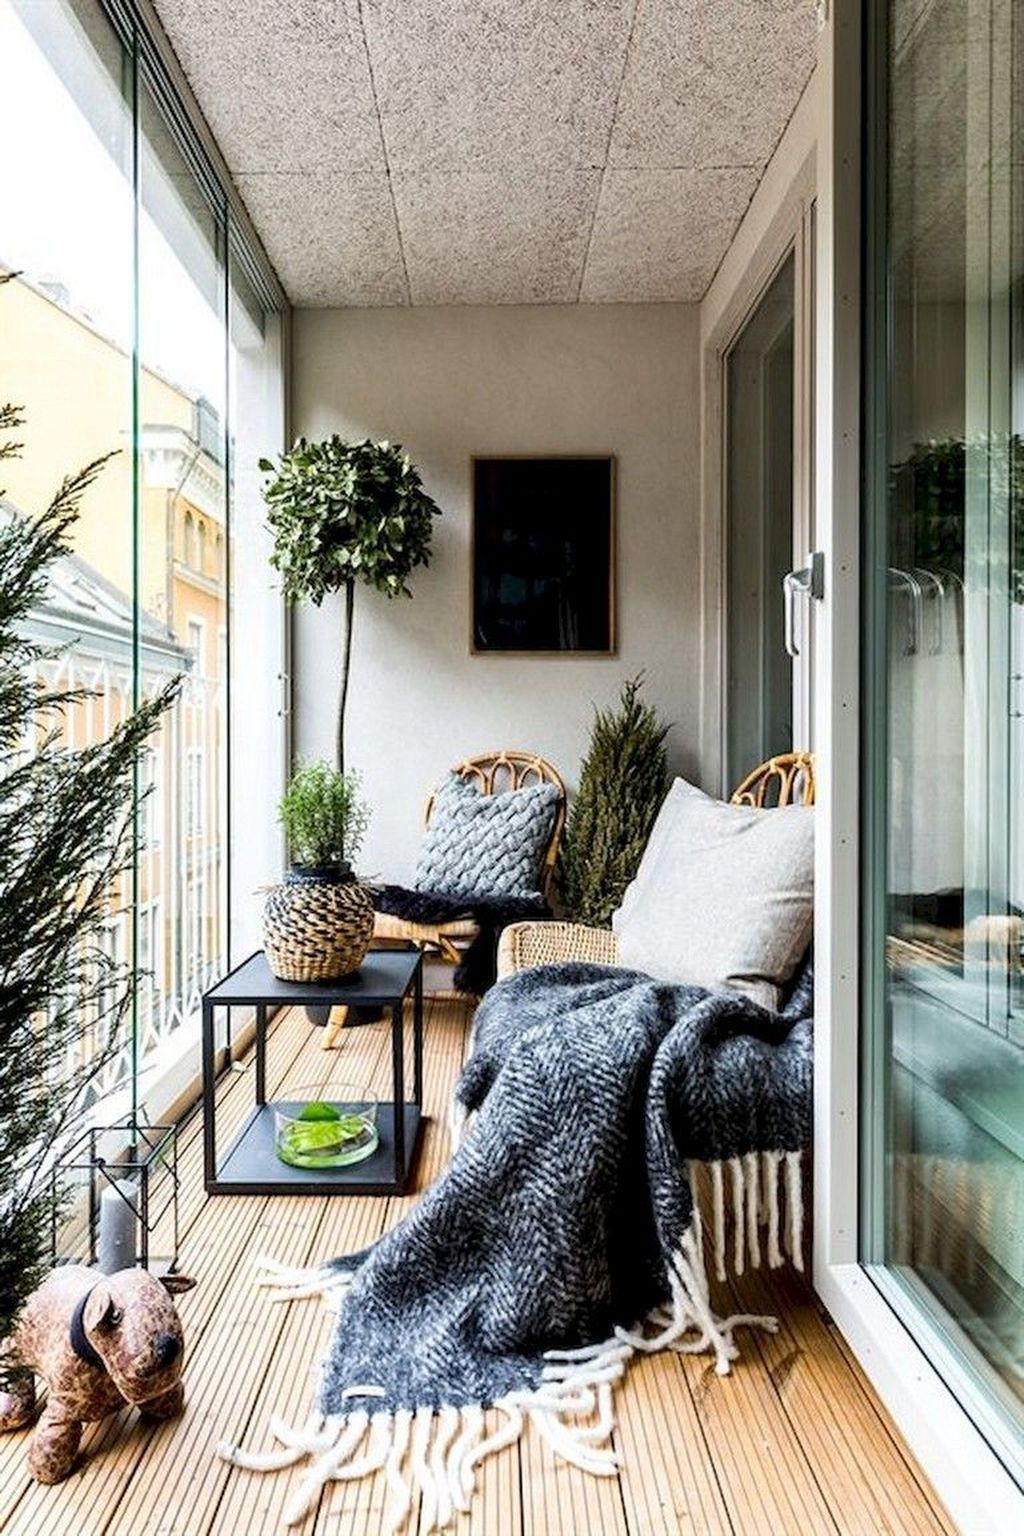 16 Dreamy Winter Balcony Design Ideas That You Need To Try in 16